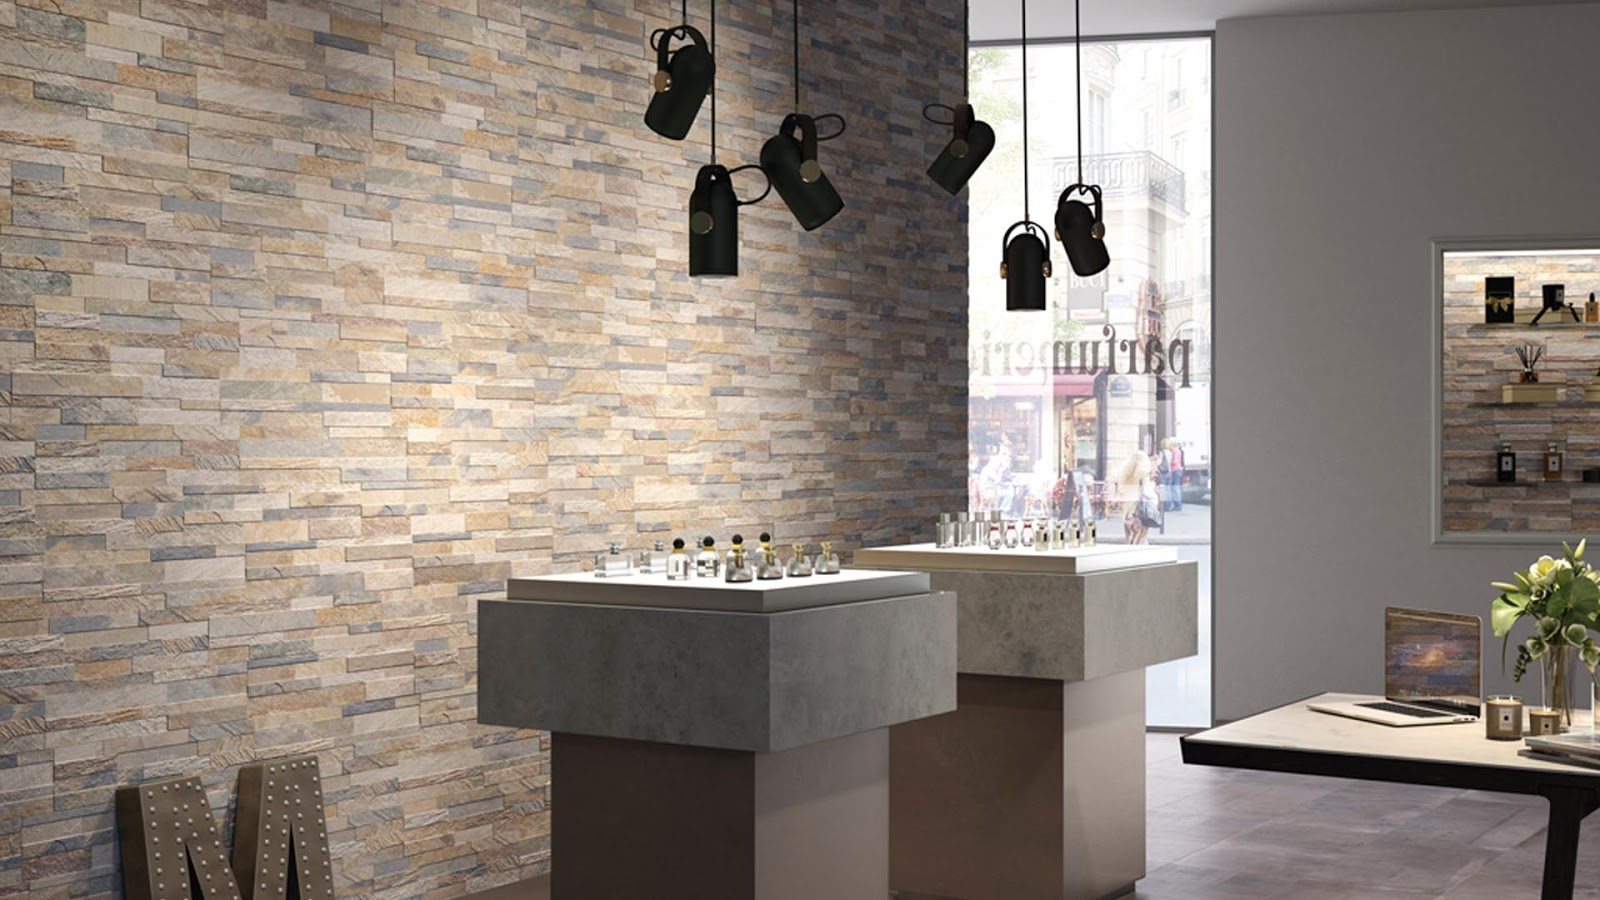 Porcelain stoneware wall tiles cubics an amazing mimic loyalty porcelain stoneware wall tiles cubics an amazing mimic loyalty and tactile and powerful material rendering dailygadgetfo Choice Image